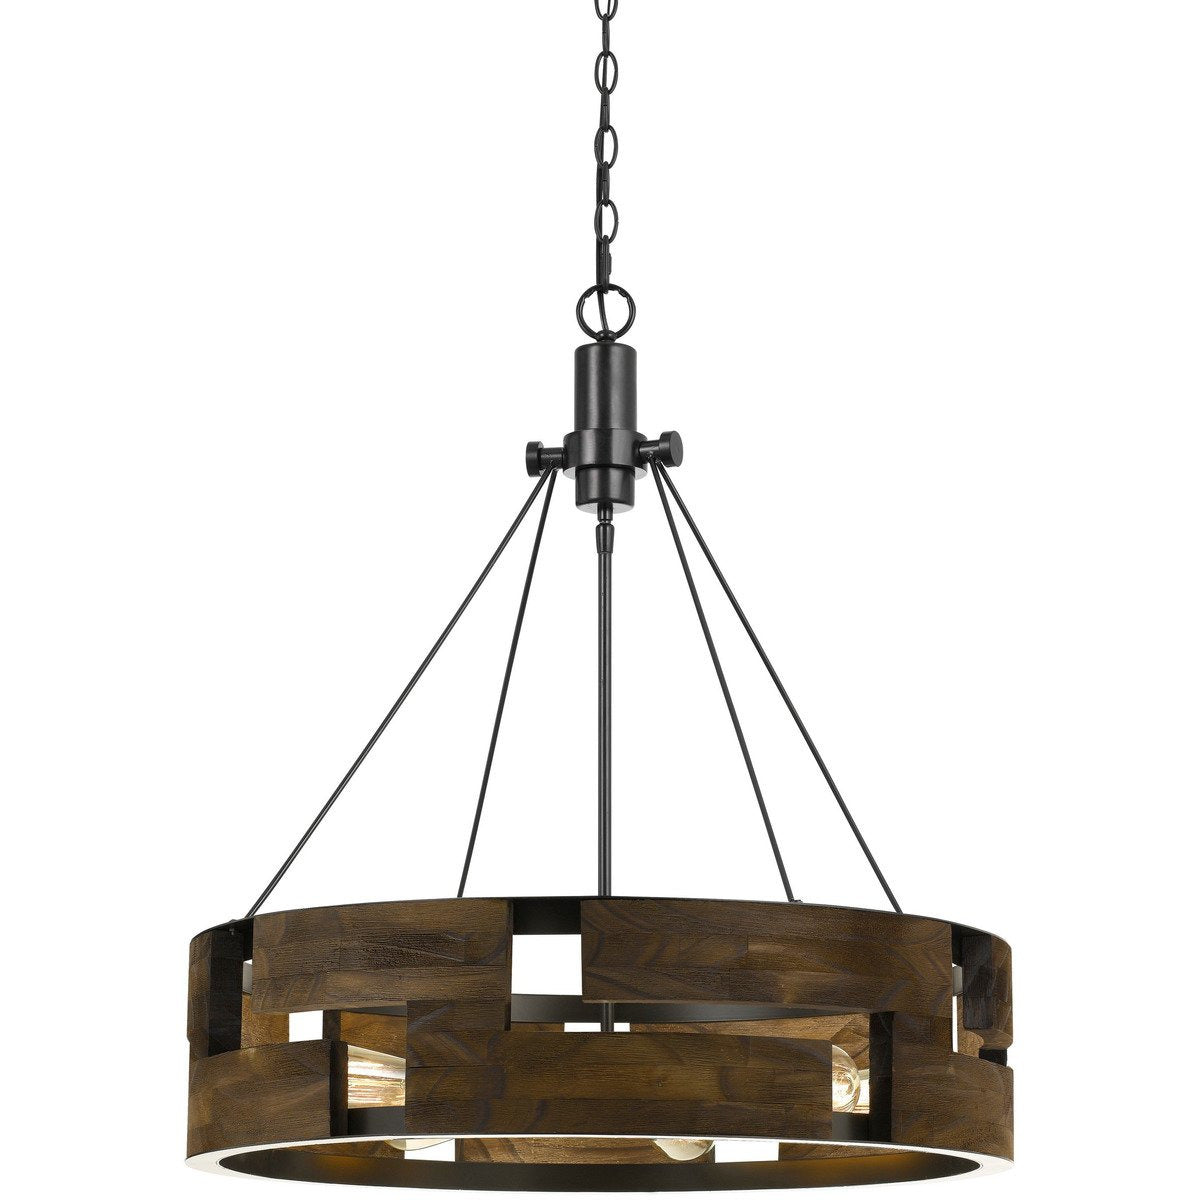 Chandeliers & Pendants - 6 Bulb Round Wooden Frame Chandelier With Geometric Cut Our Design, Brown